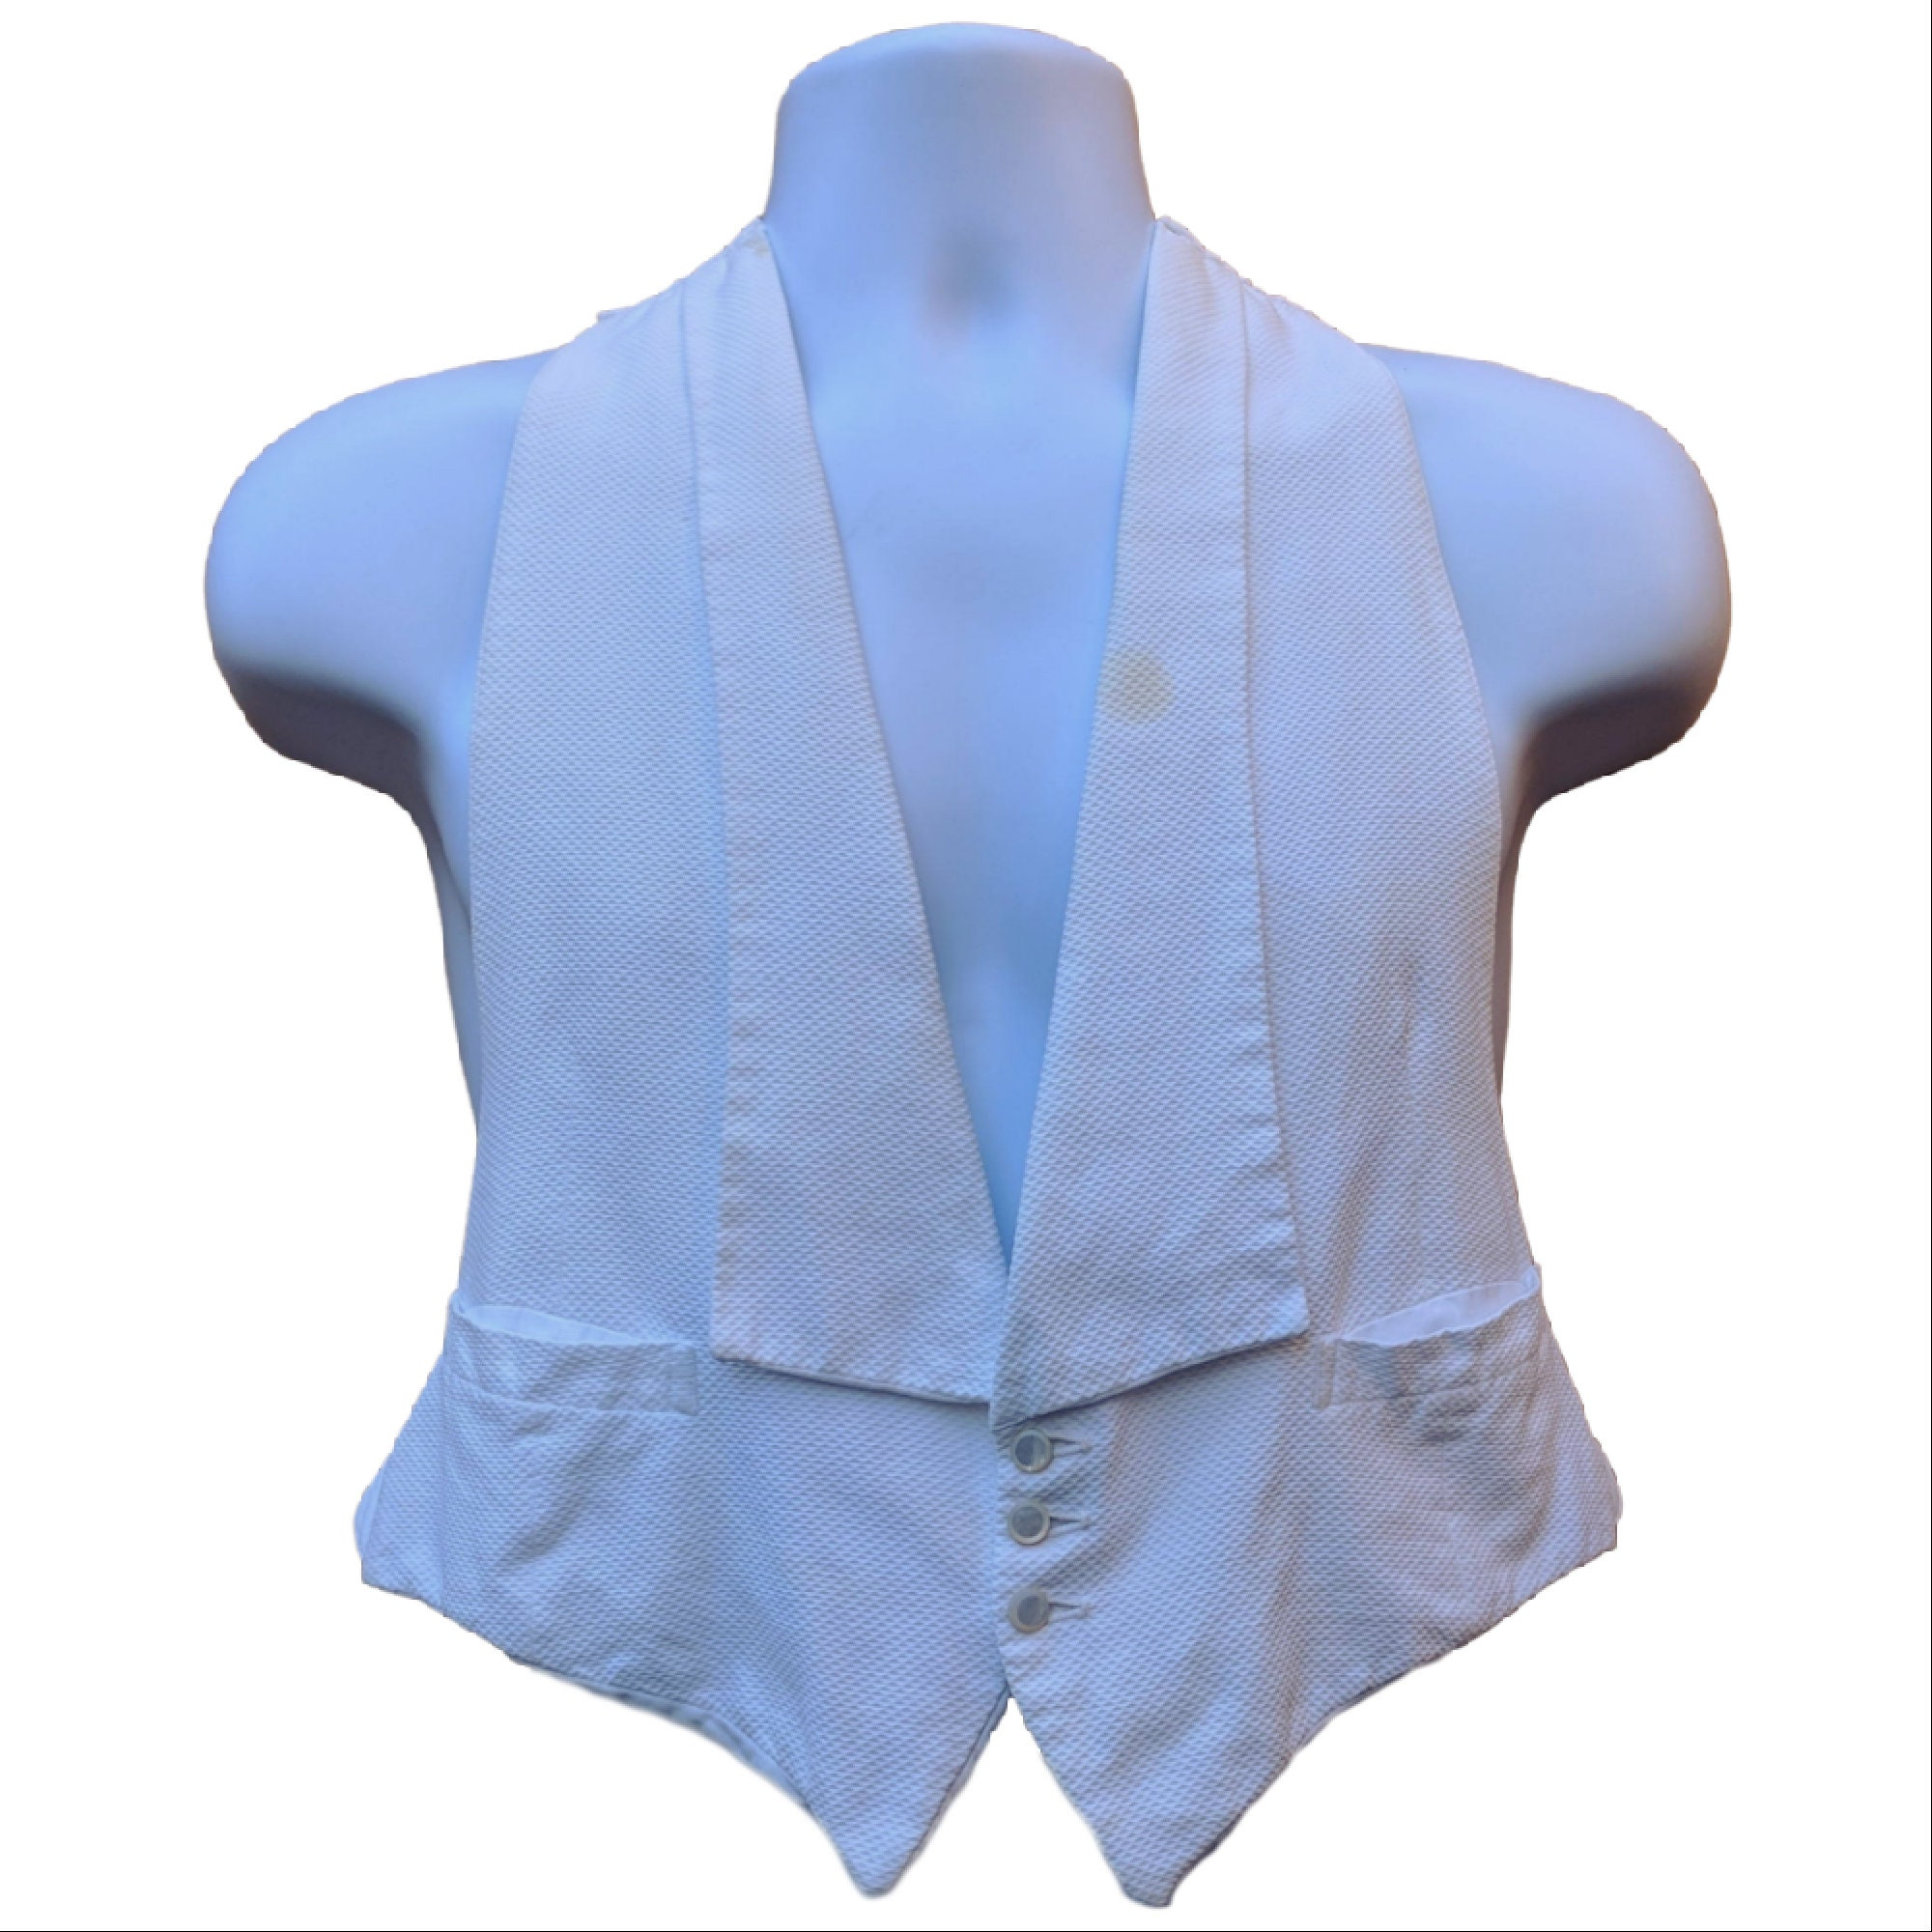 Men's 1920s Style Ties, Neck Ties & Bowties Discounted Vintage 1920s Or 30s Mens White Tuxedo Dinner Vest $0.00 AT vintagedancer.com